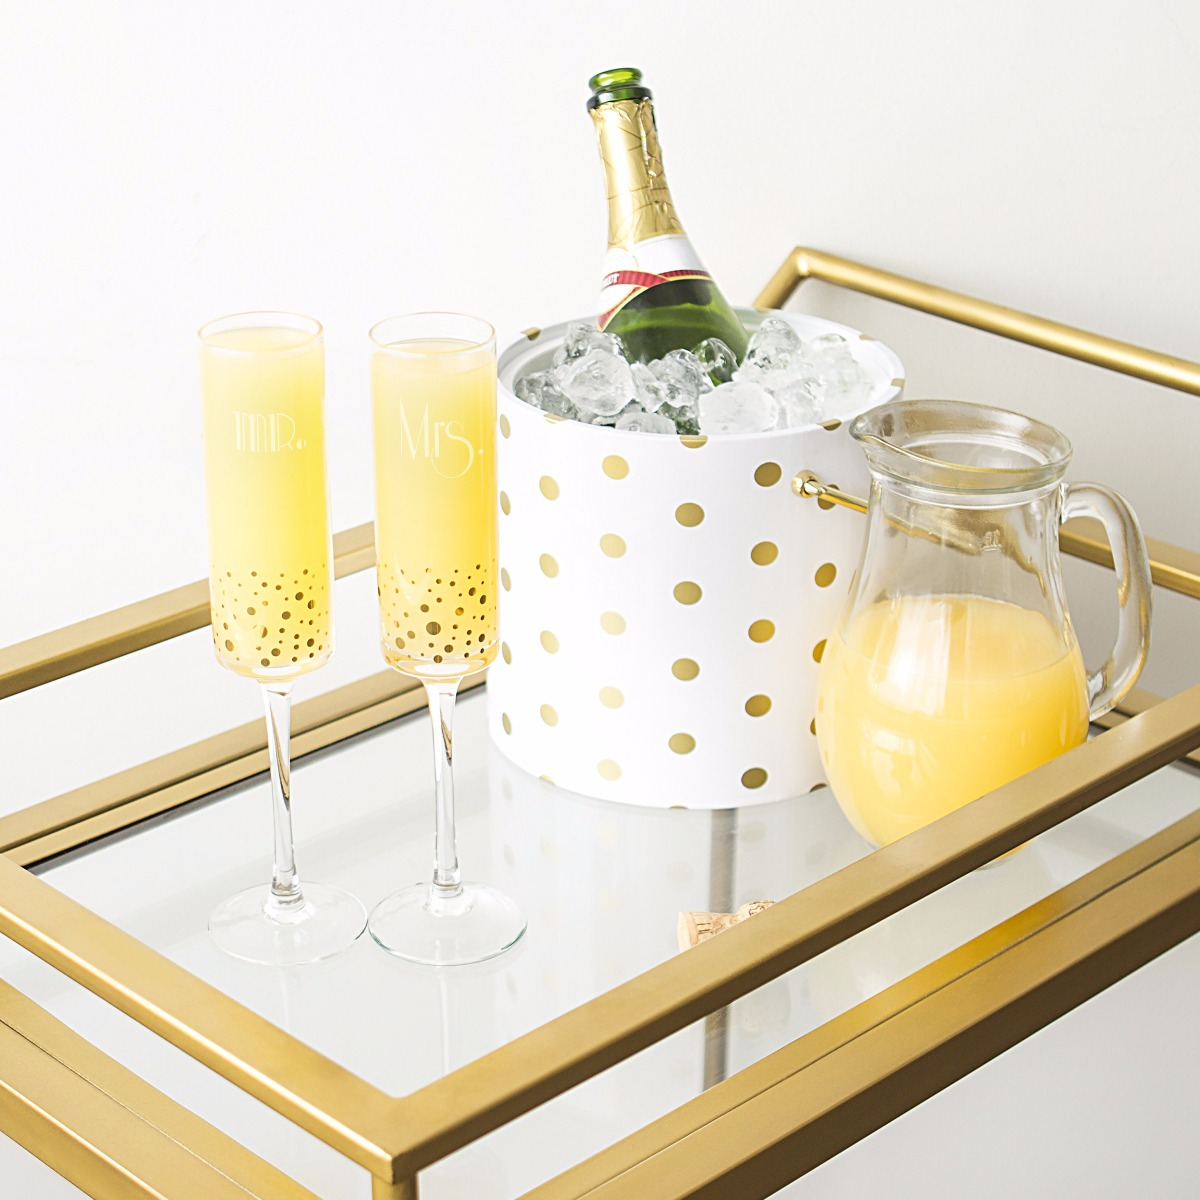 Mr. & Mrs. Gatsby Gold Dotted Champagne Flutes